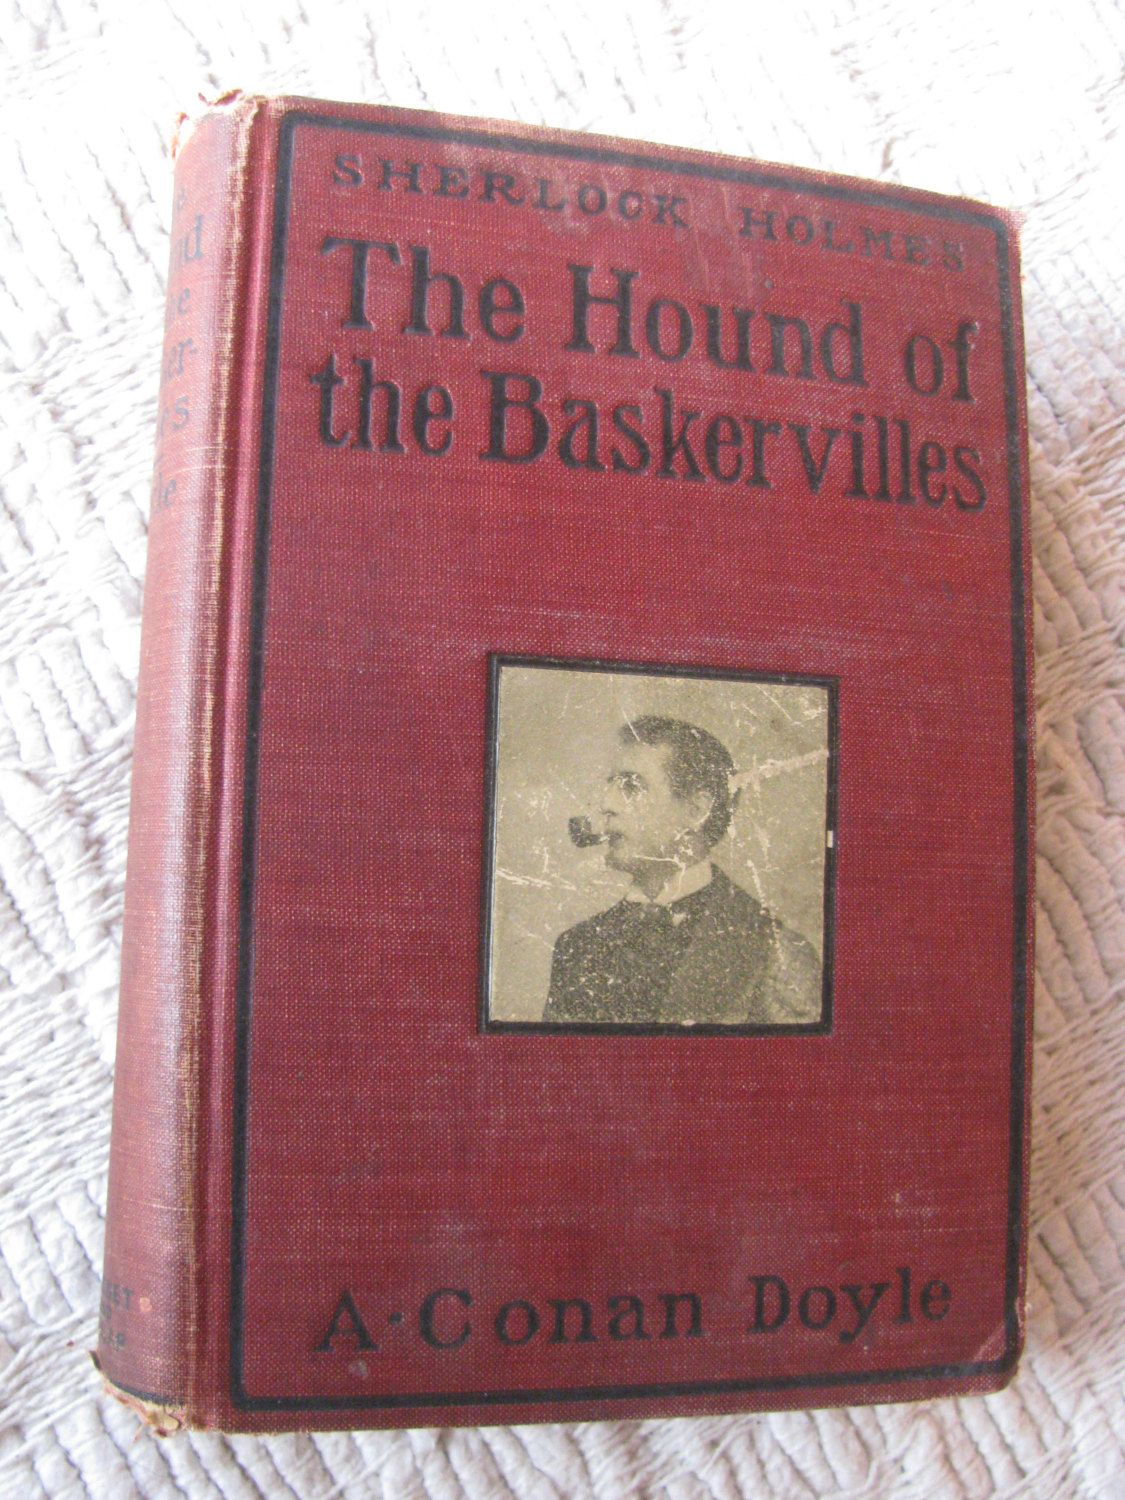 1902 First Edition 4th Impression The Hound Of Baskervilles A Etsy Conan Doyle Sherlock Holmes Holmes